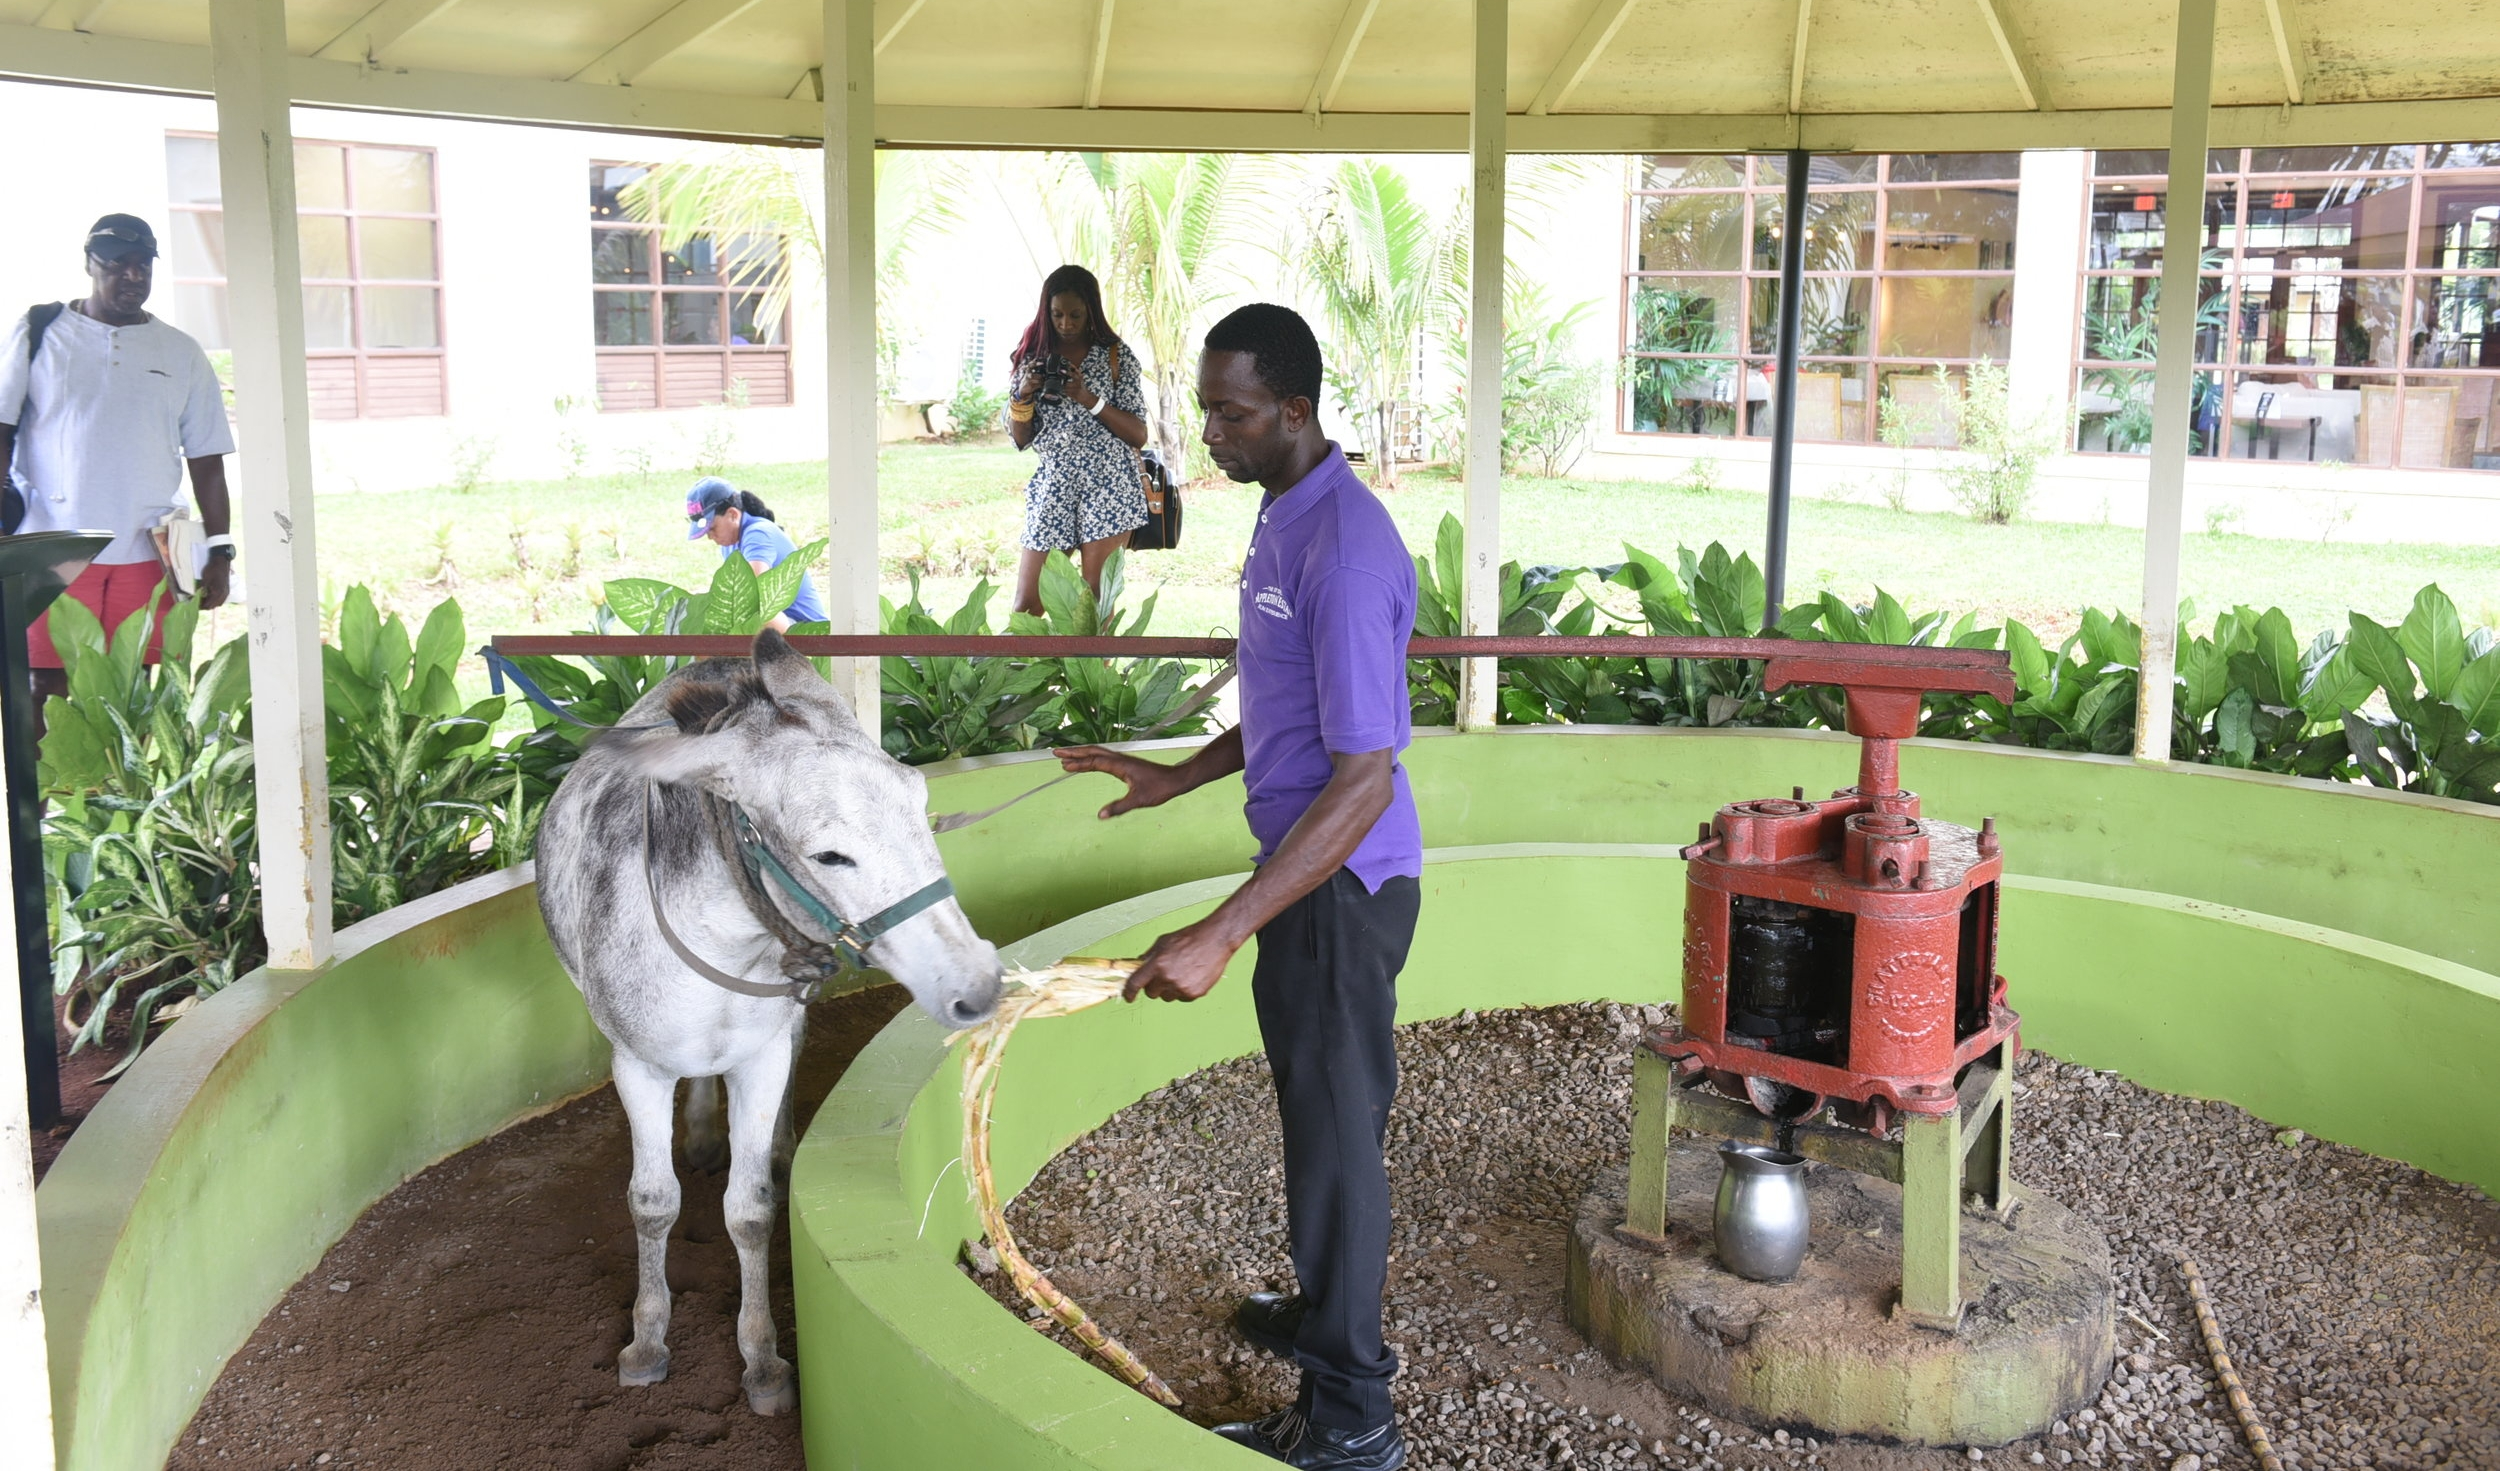 Paz, the donkey, grinds sugar cane for visitors